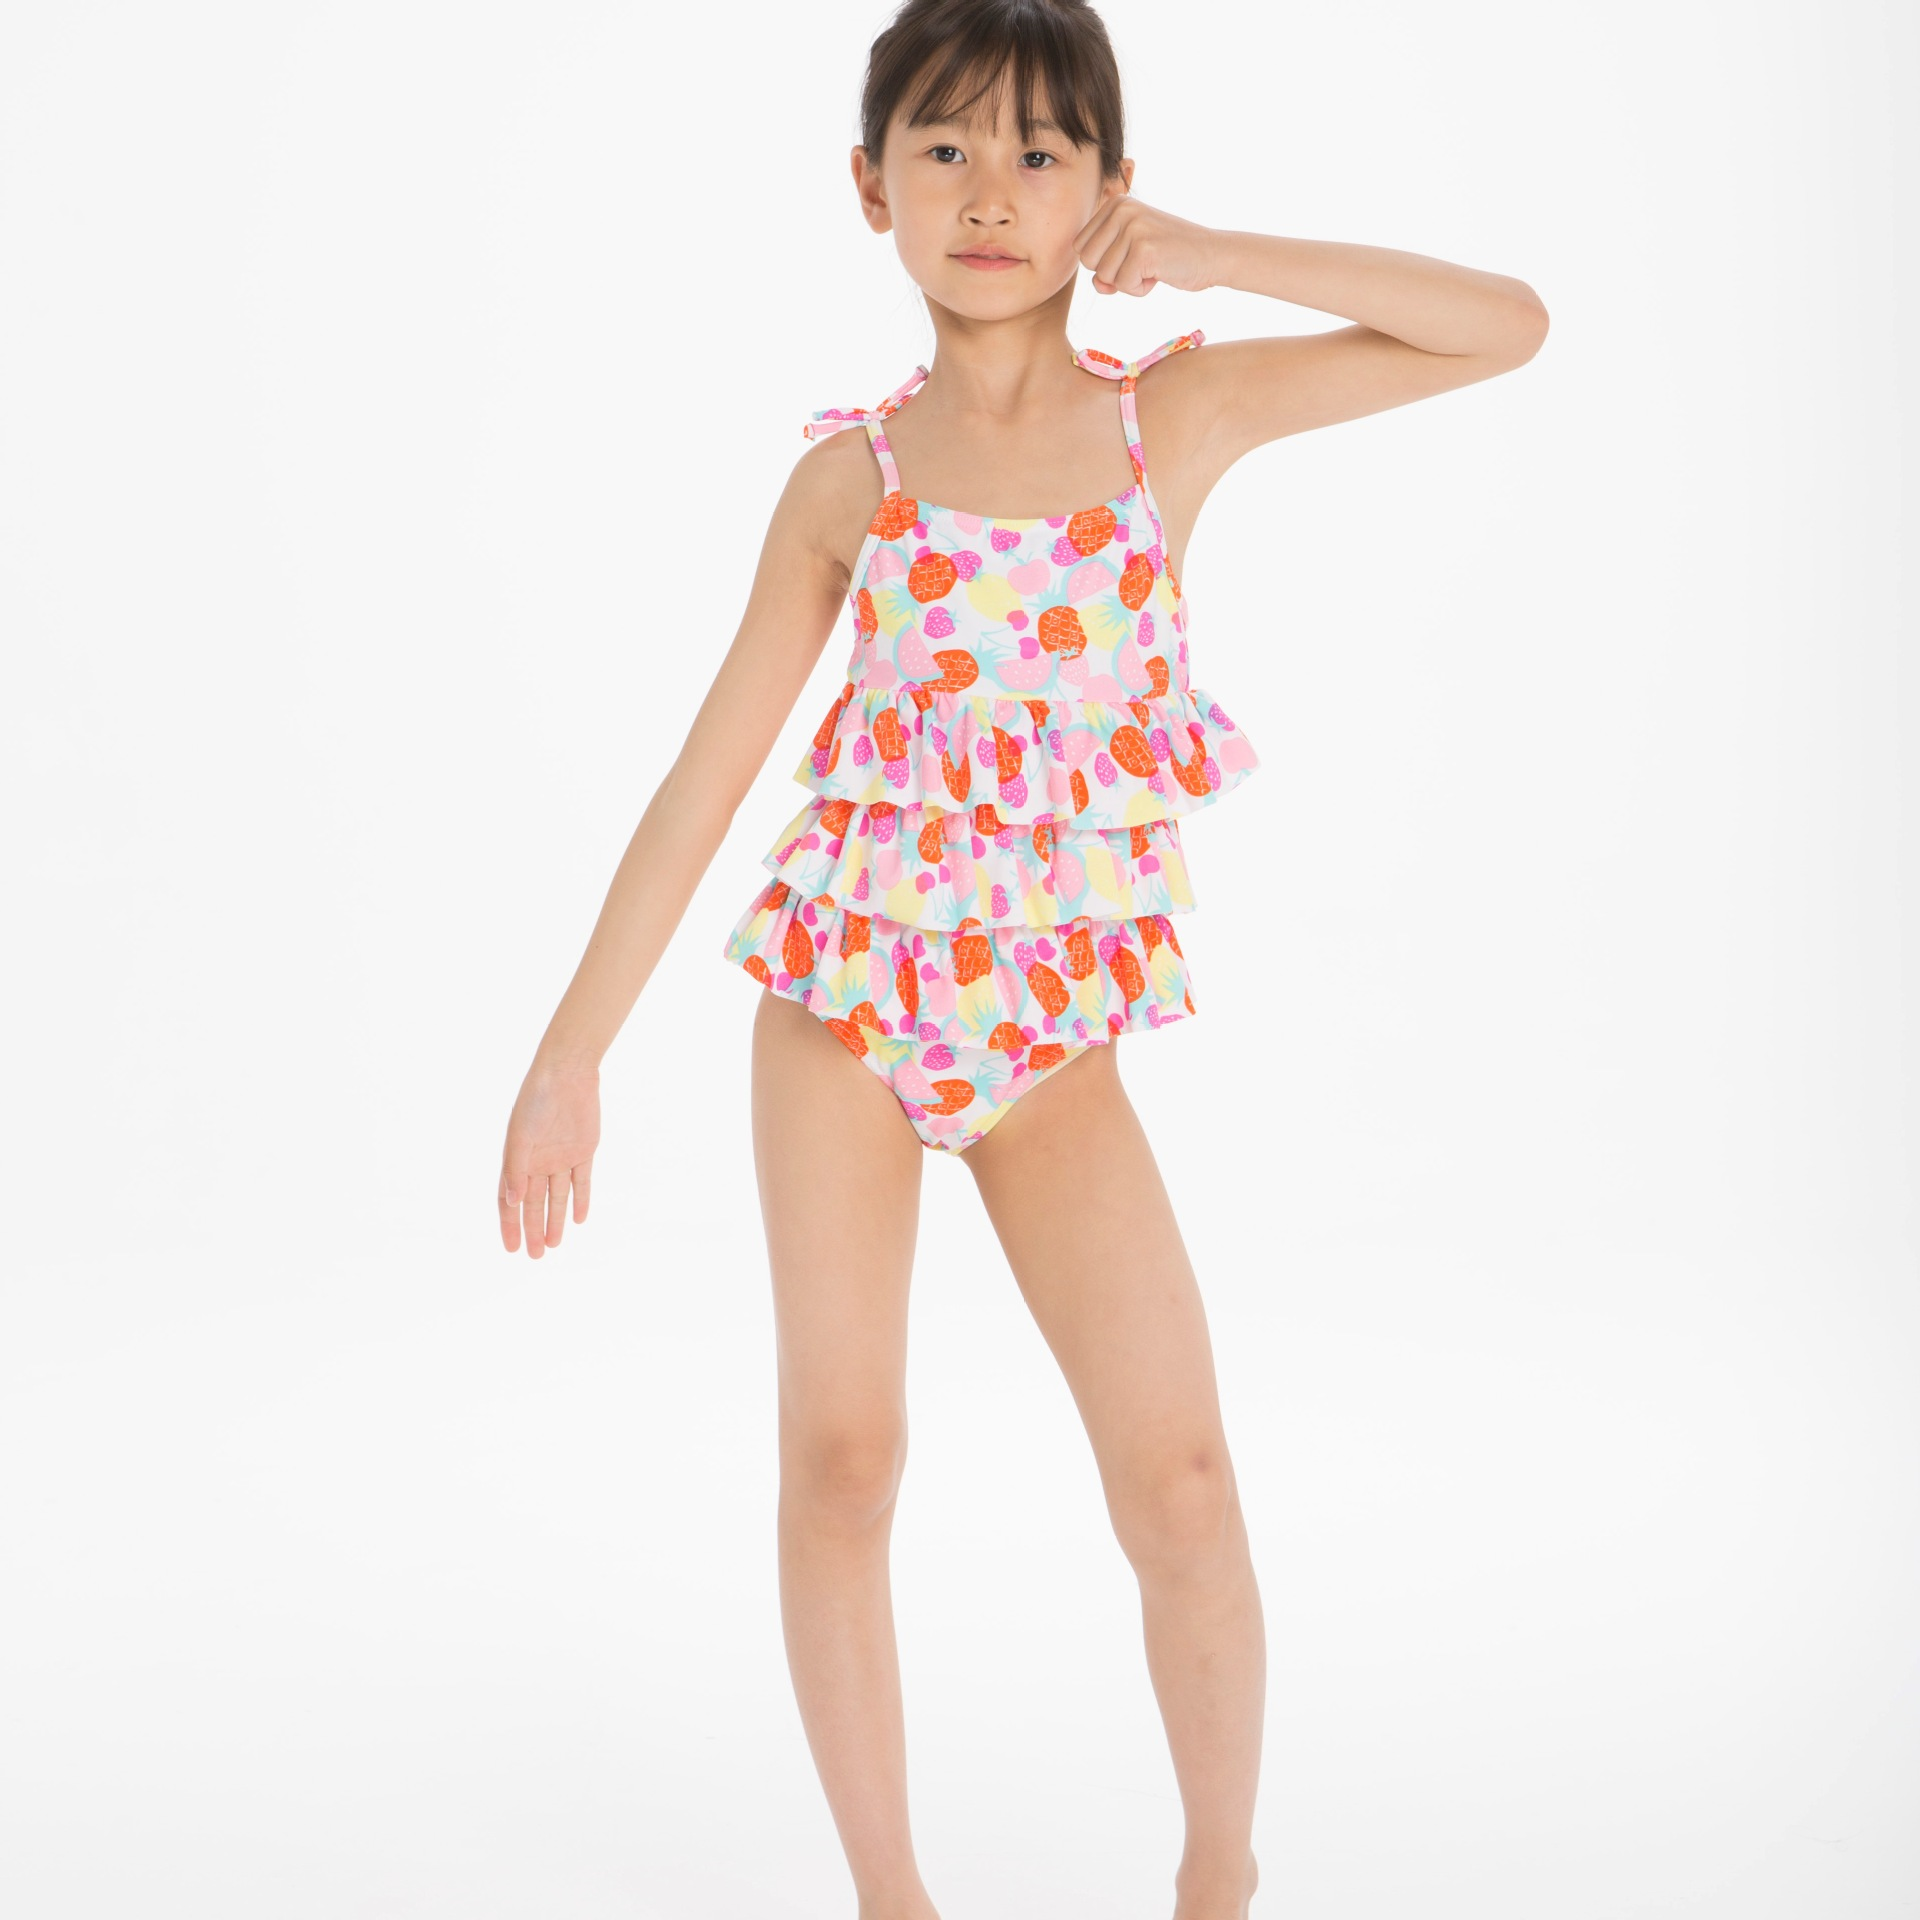 Girls Anti-UV One-piece Multilayer Flounced CHILDREN'S Swimwear Bathing Suit Cross Border Electricity Supplier